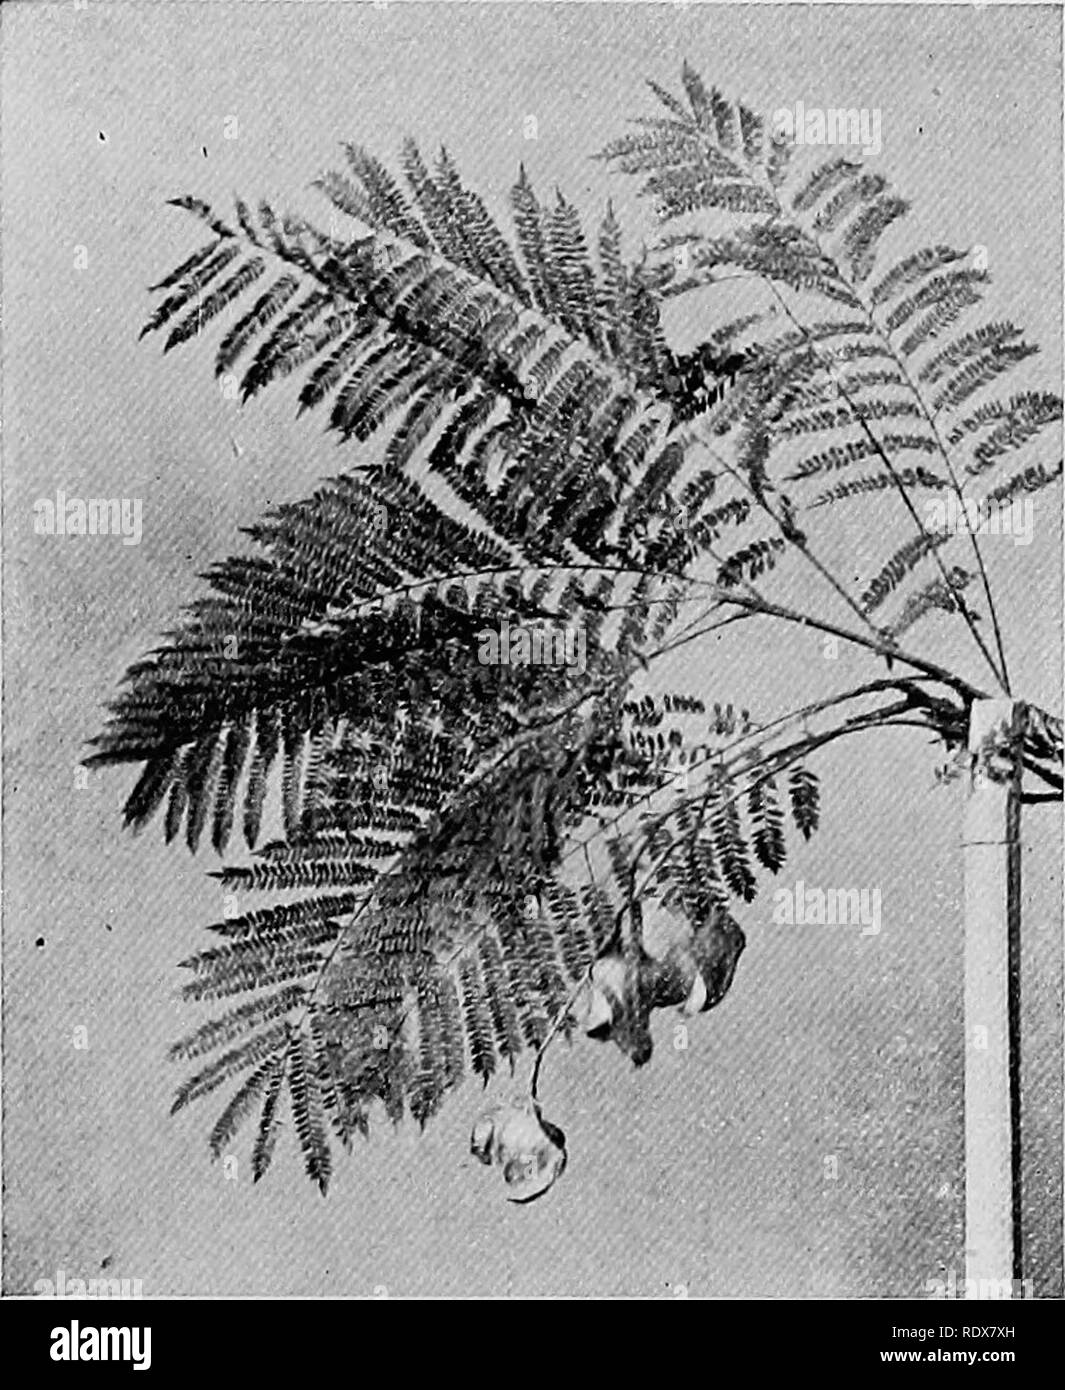 . The flora of the Algeria. Botany. Eucalyptus Eucalyptus Rostrata NO — Myrtaceas Red Gum Tree. Jacaranda Jacaranda Mimossefolia NO — Bignoniaceffi Jacaranda Fine handsome'tree with fern-lilte foliage ; in spring it bears long pendant clusters of viplet flowers, beautiful to behold ; the seed pods are bi'oad, short and twisted. (18). Please note that these images are extracted from scanned page images that may have been digitally enhanced for readability - coloration and appearance of these illustrations may not perfectly resemble the original work.. Gubb, Alfred S. (Alfred Samuel), 1857-. Alg - Stock Image